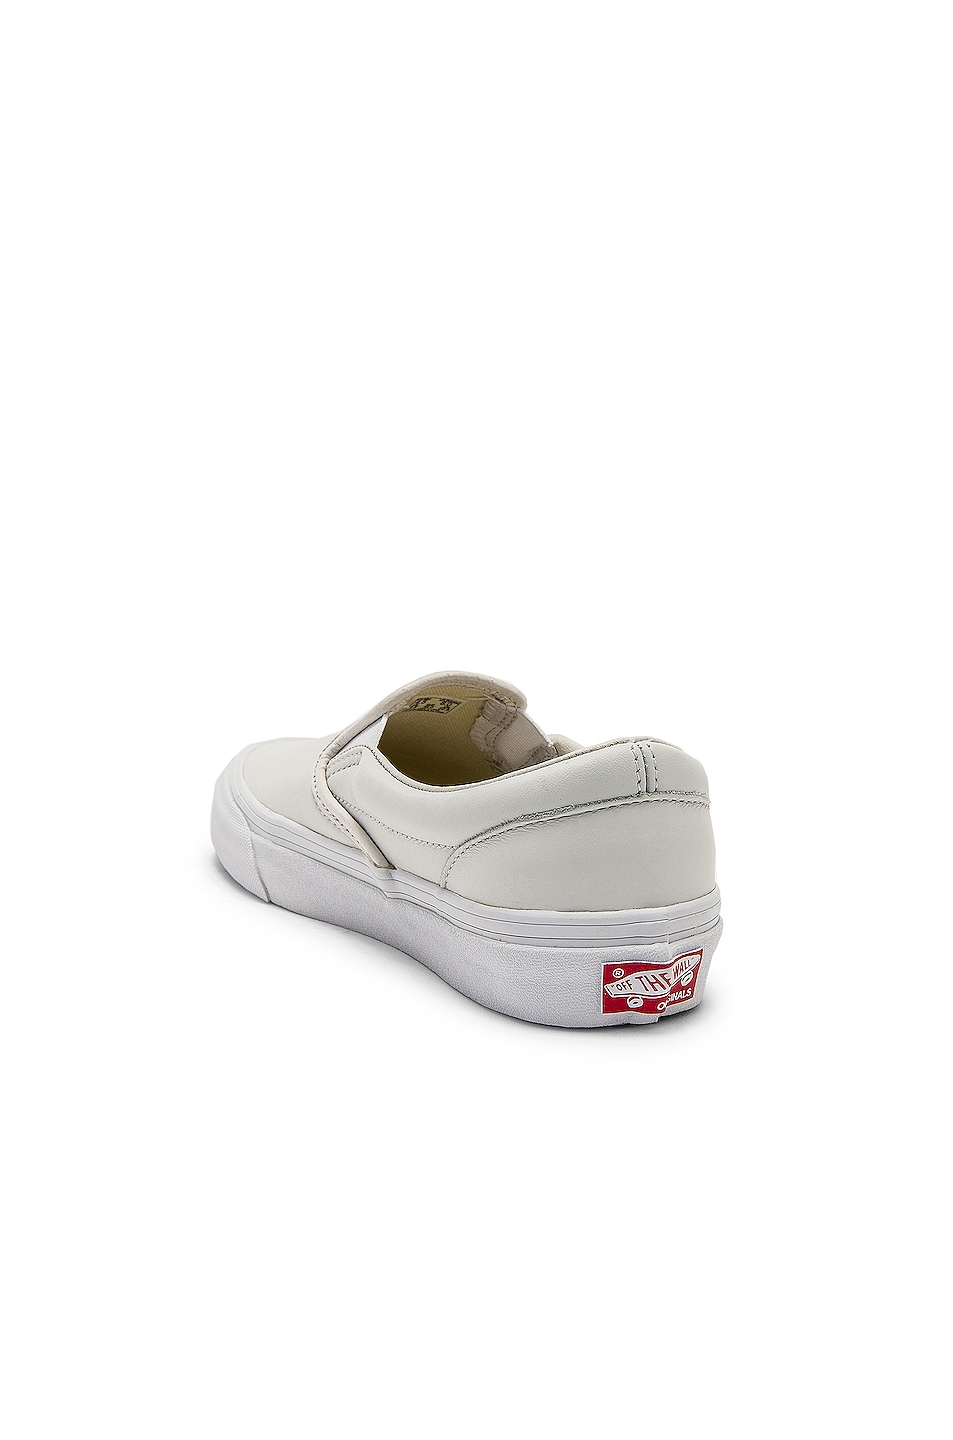 Image 3 of Vans Vault OG Classic Slip-On LX in White